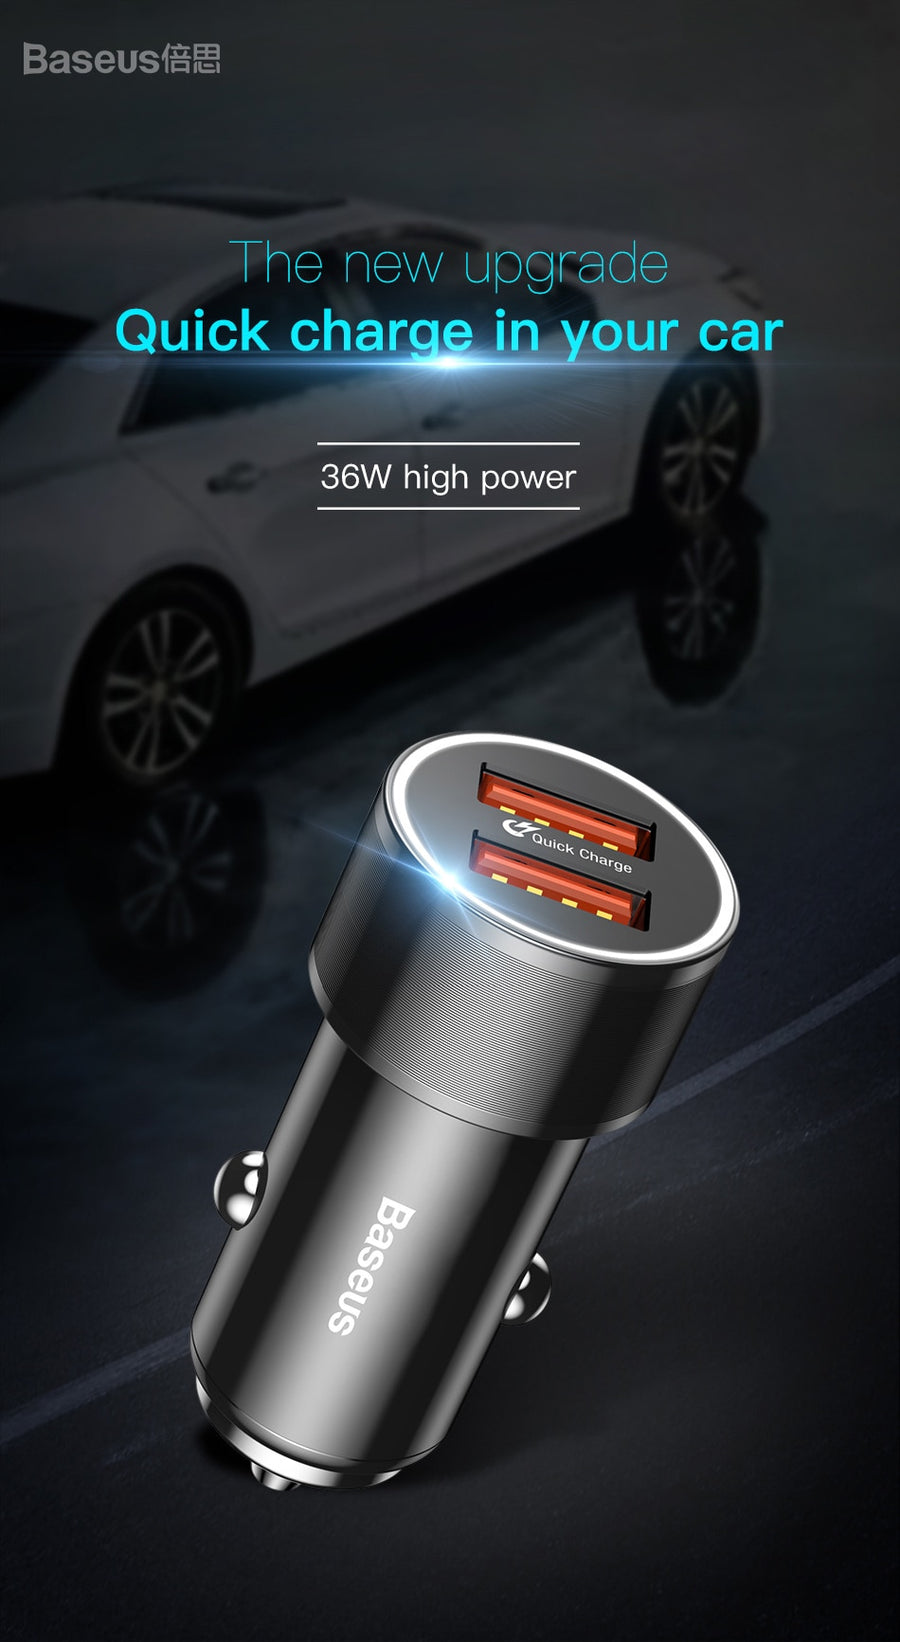 Baseus 36W Dual USB Car Charger - Repair Bull